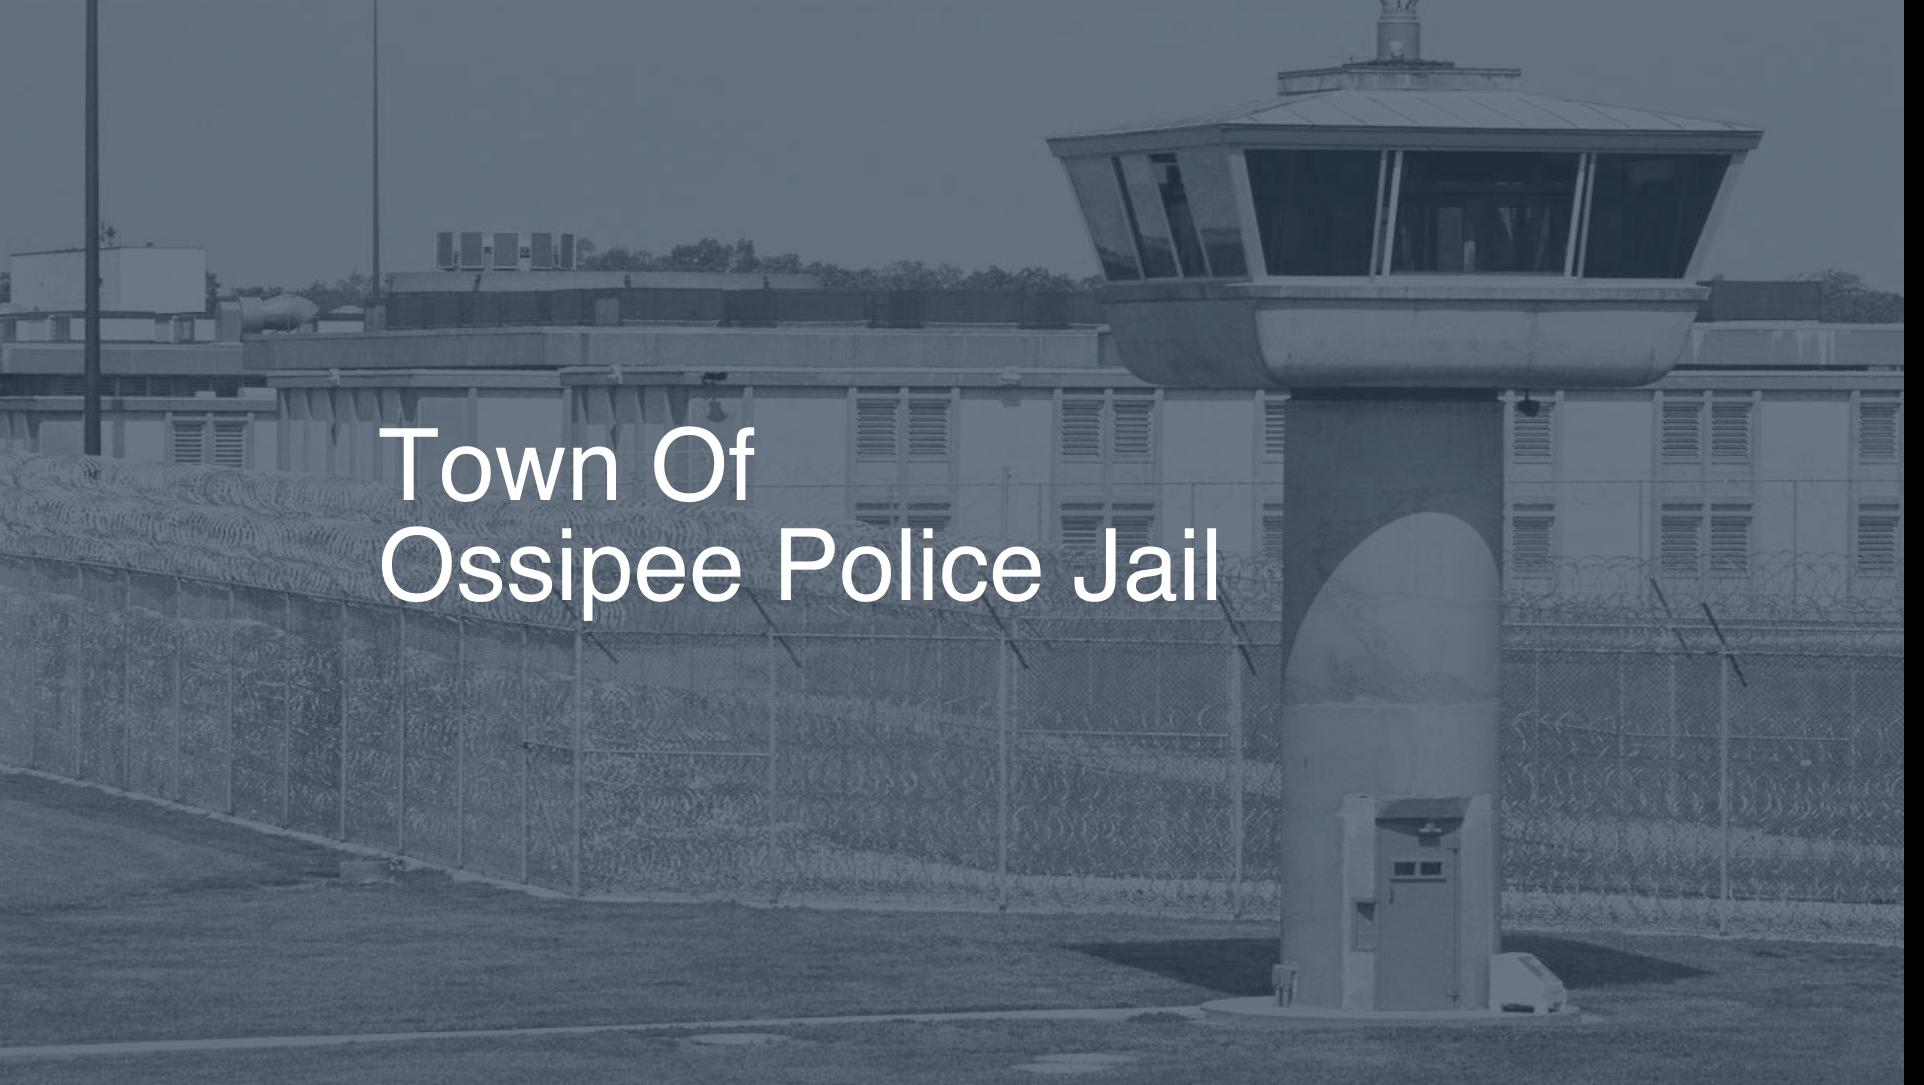 Town of Ossipee Police Jail correctional facility picture